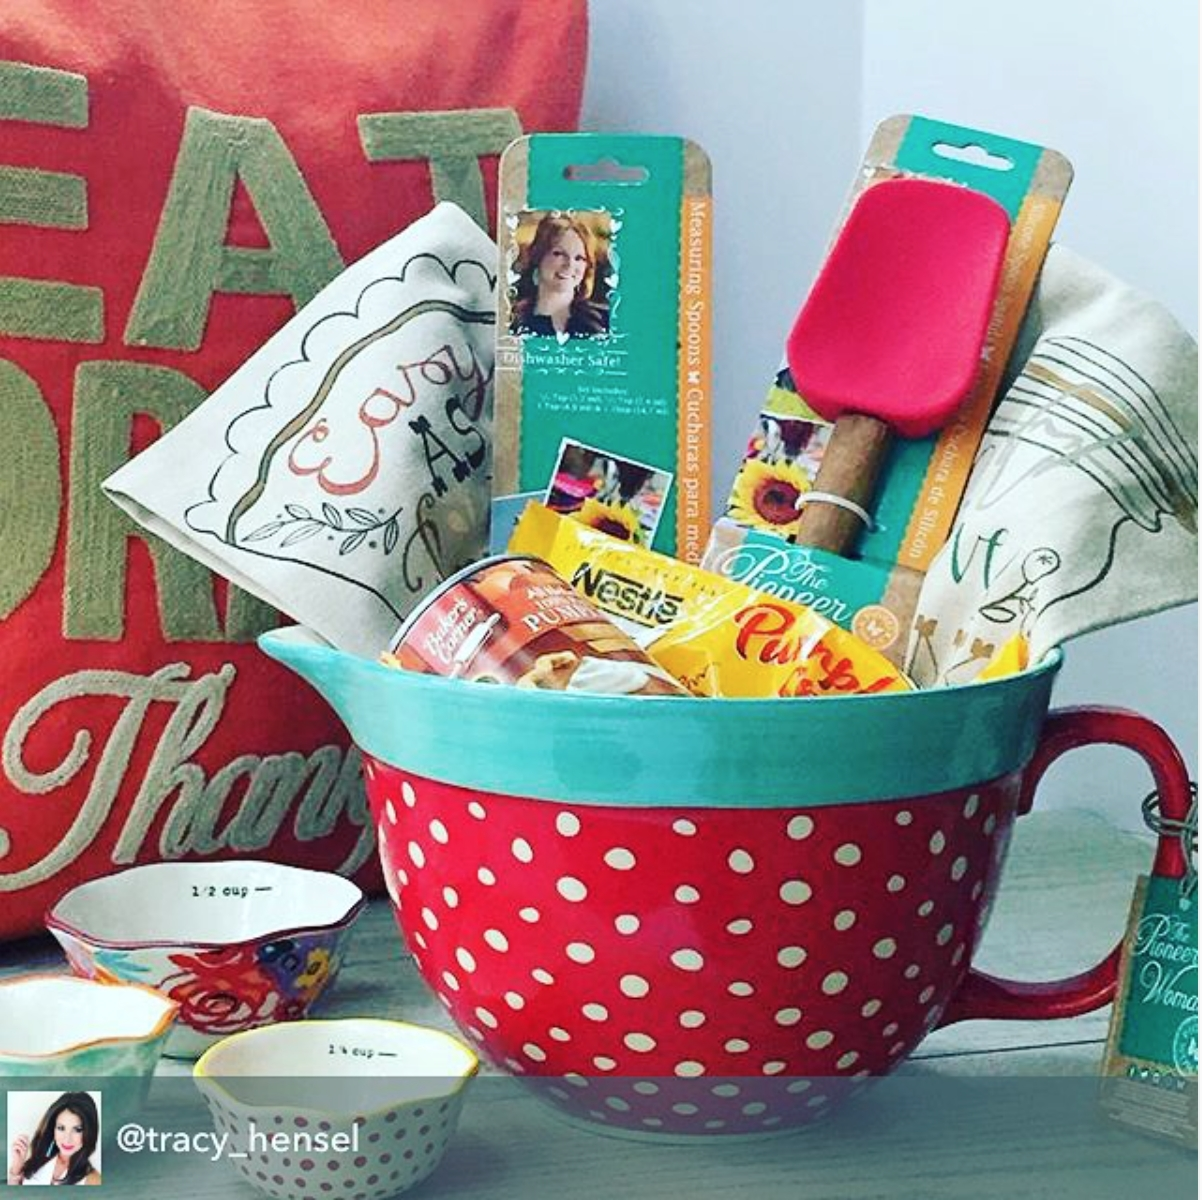 10 Famous Gift Basket Ideas For Women great gift idea featuring the new pioneer woman mixing bowl 1 2020